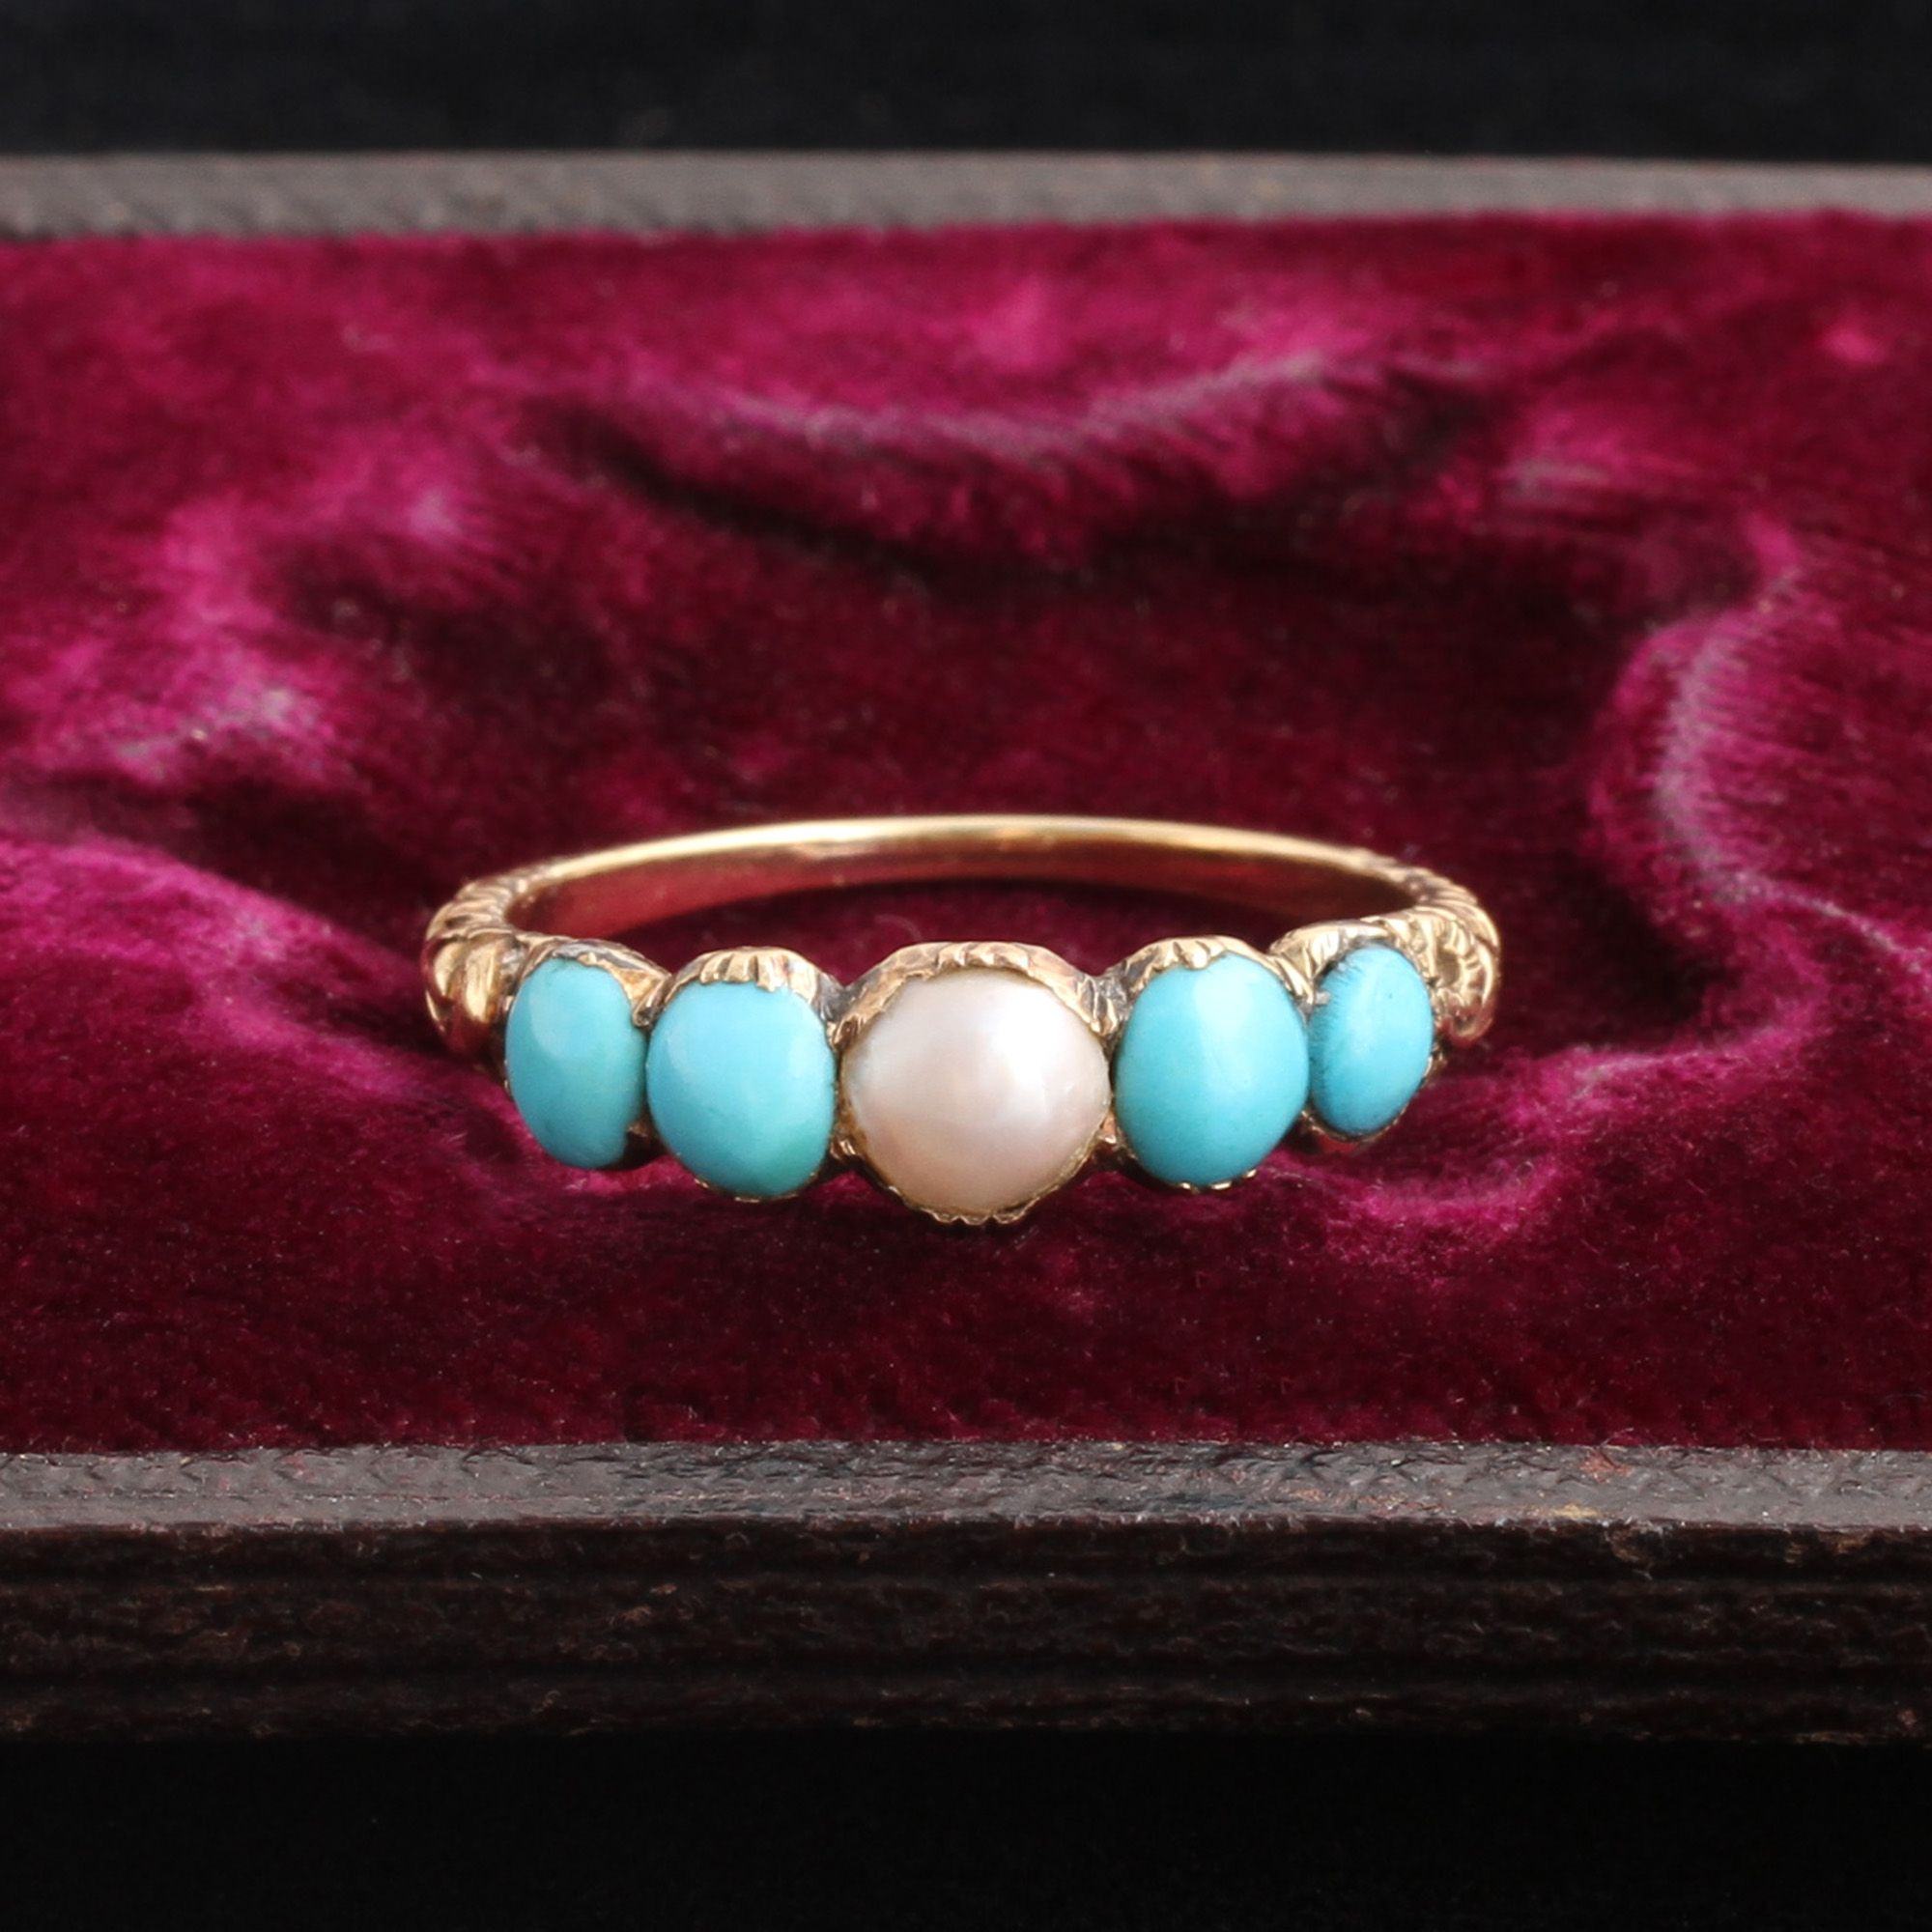 Detail of Georgian turquoise and pearl ring